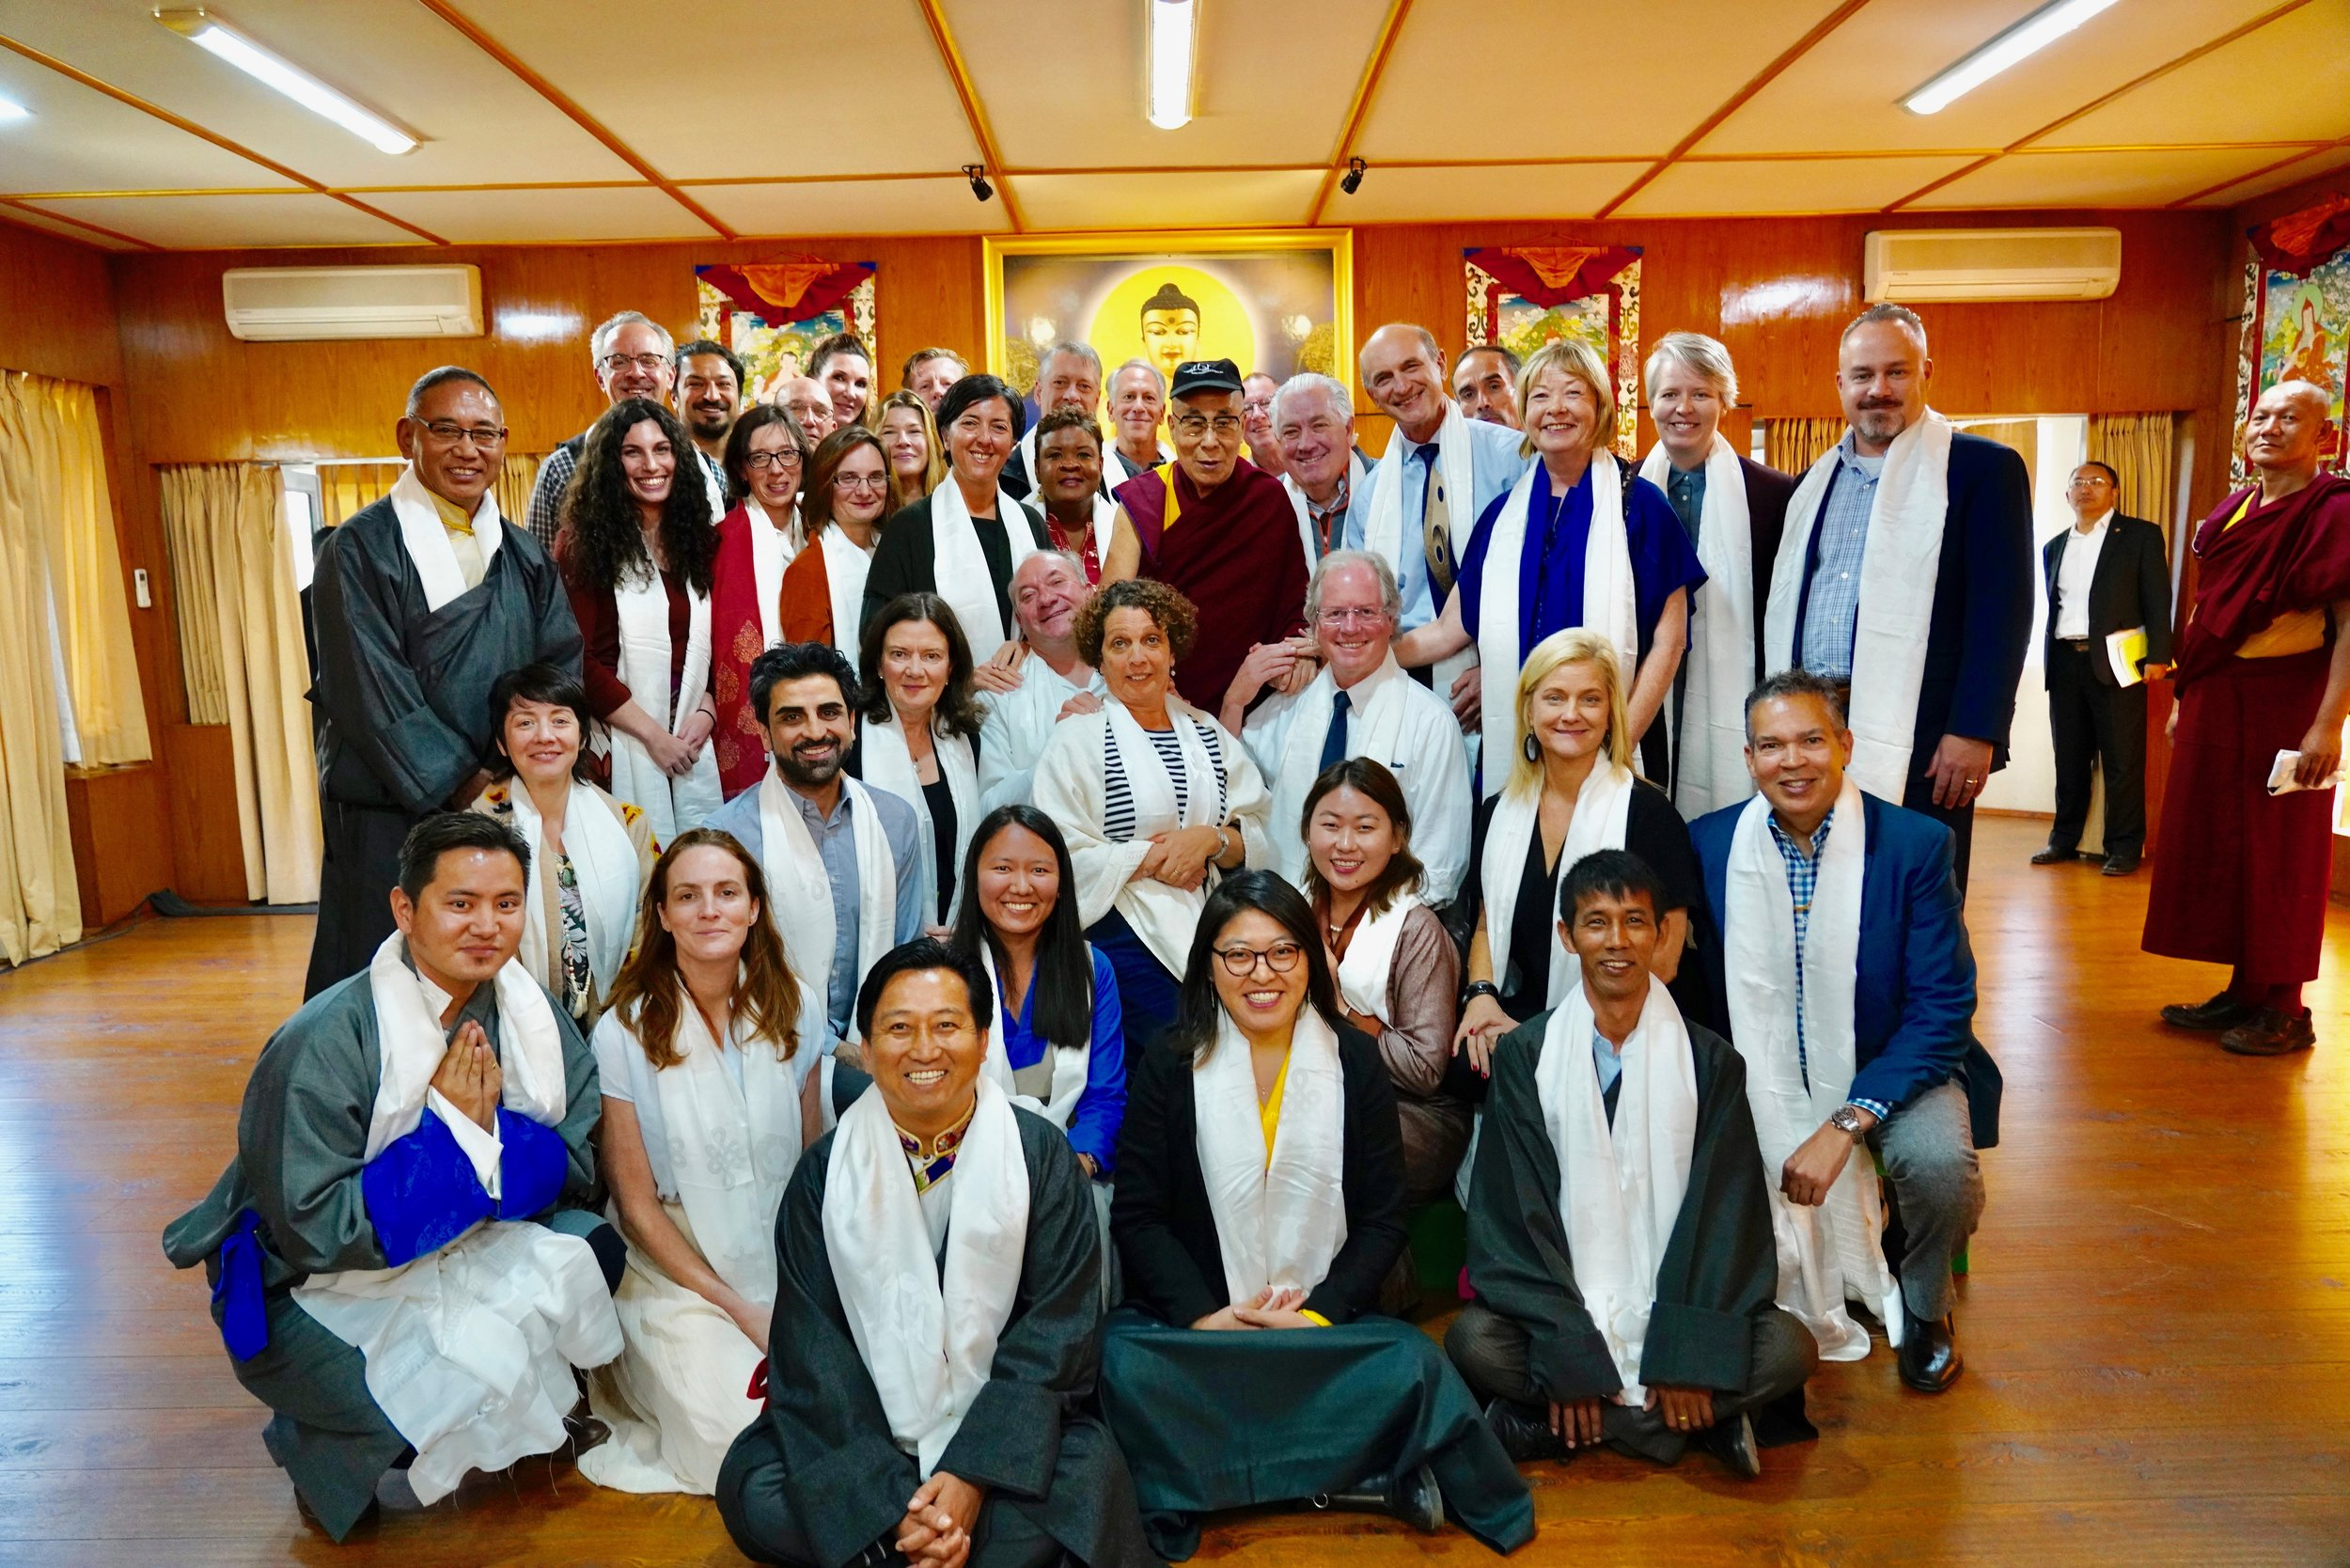 """I'm in the back row, right side. The Dalai Lama, center, is wearing a baseball cap that says """"San Francisco Ballet"""" given to him by one of the delegates Danielle St. Germain-Gordon. He loves baseball caps! Who knew?!"""